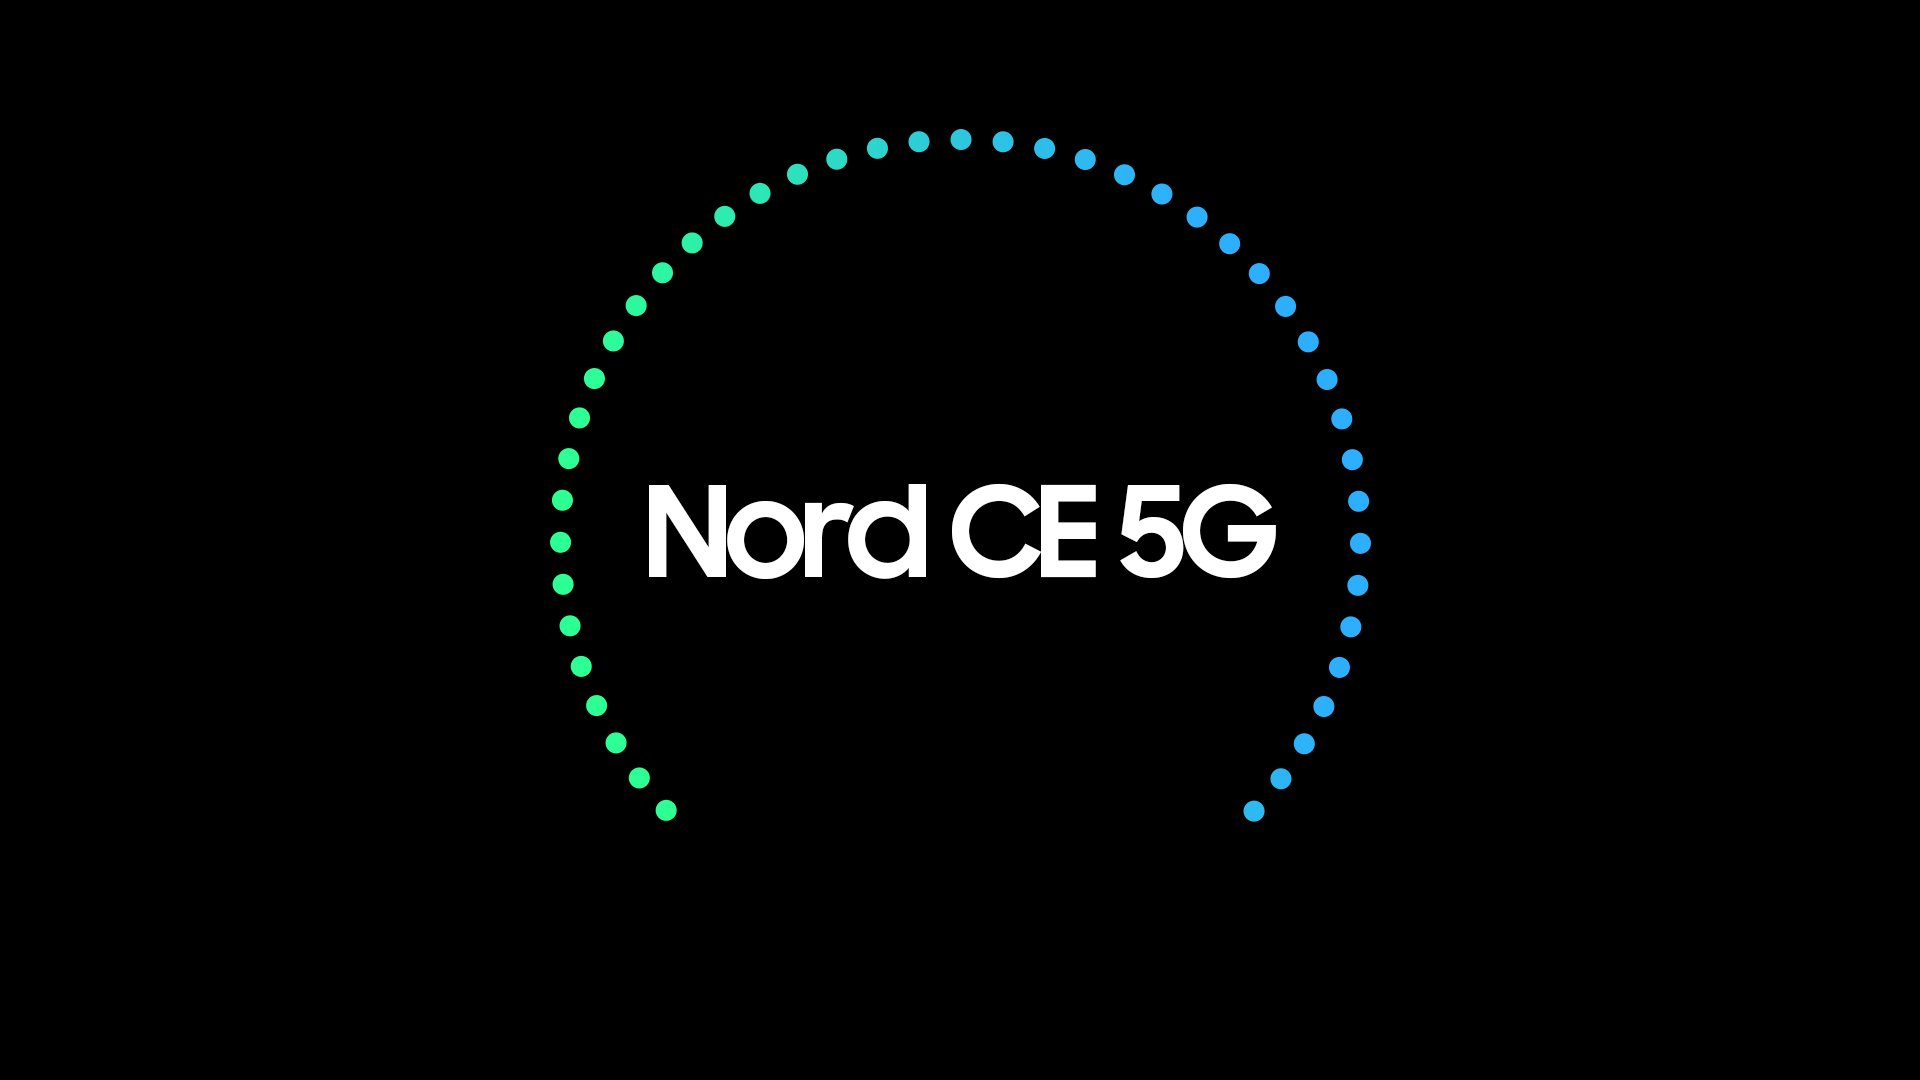 OnePlus Nord CE 5G – Revealed Specification On Storage, Colour Options & RAM